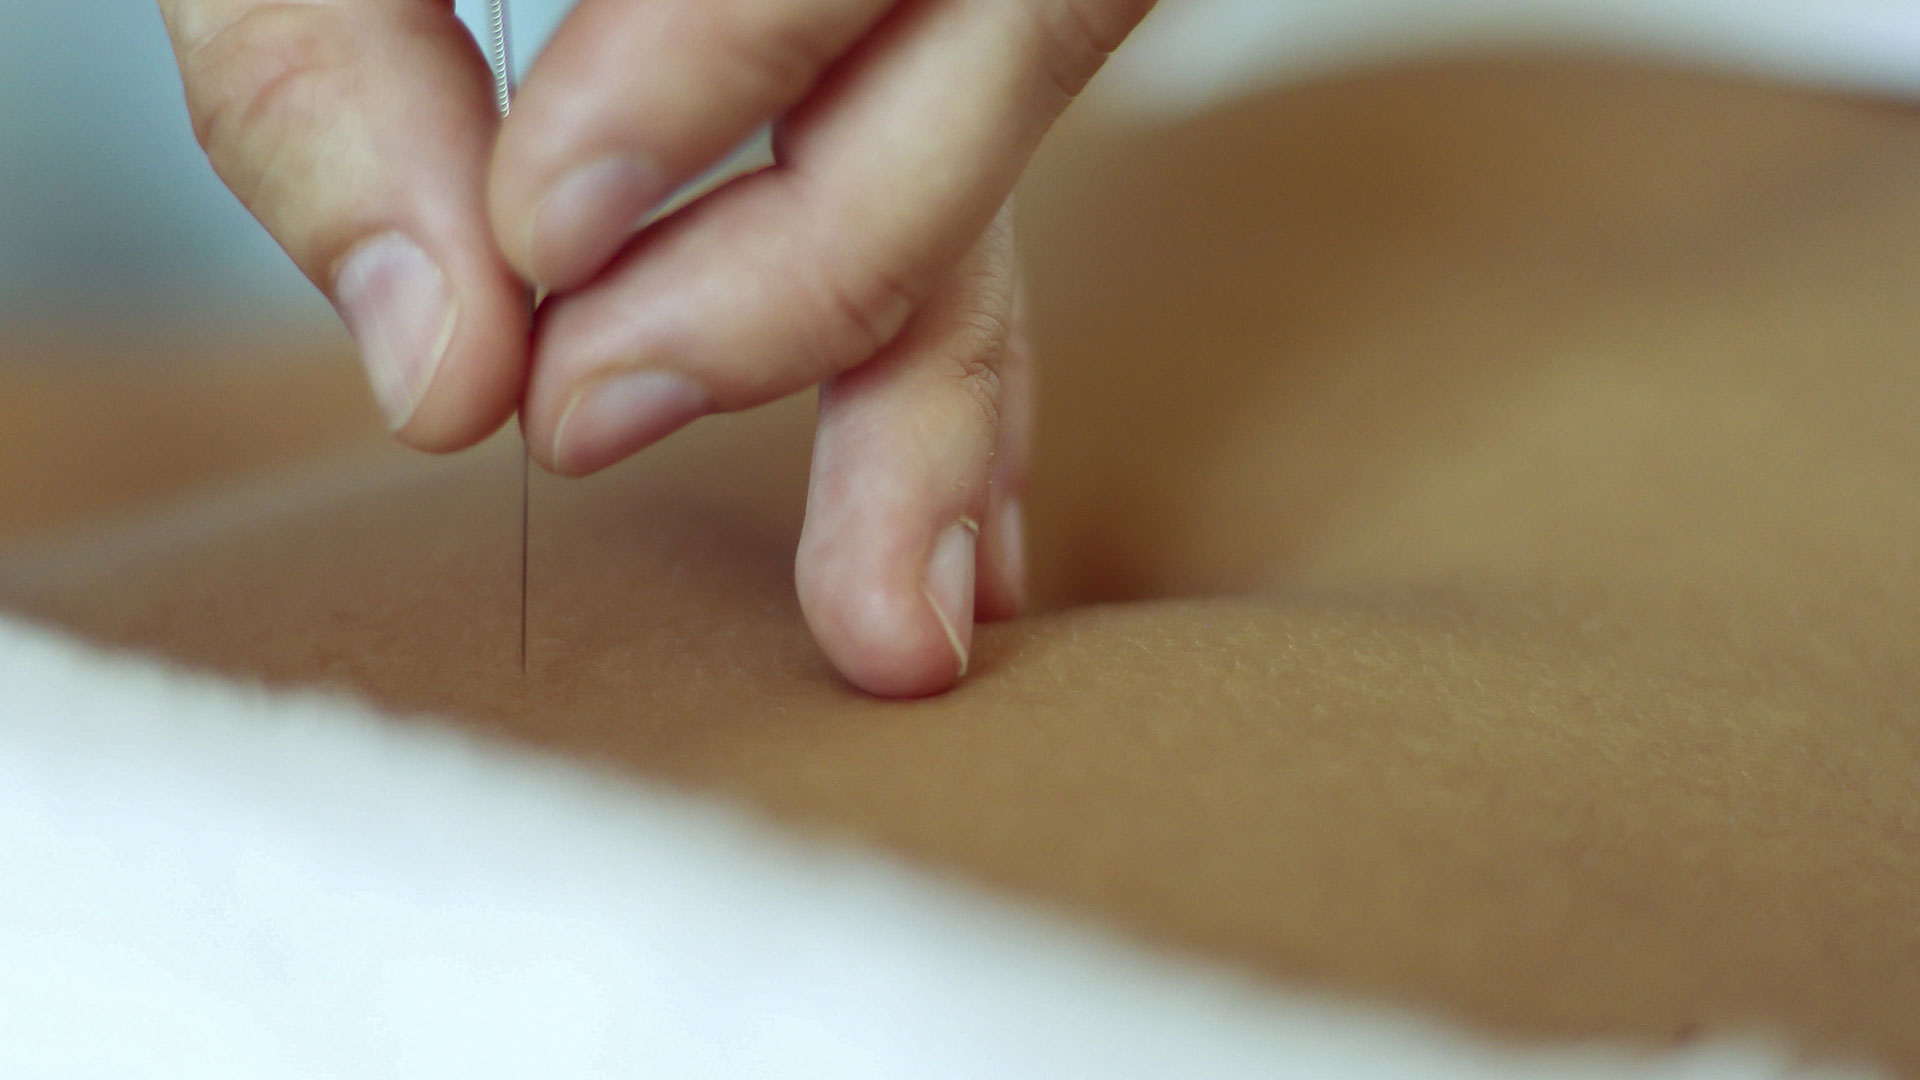 Acupuncture services from Balanced Body Acupuncture & Chriropractic